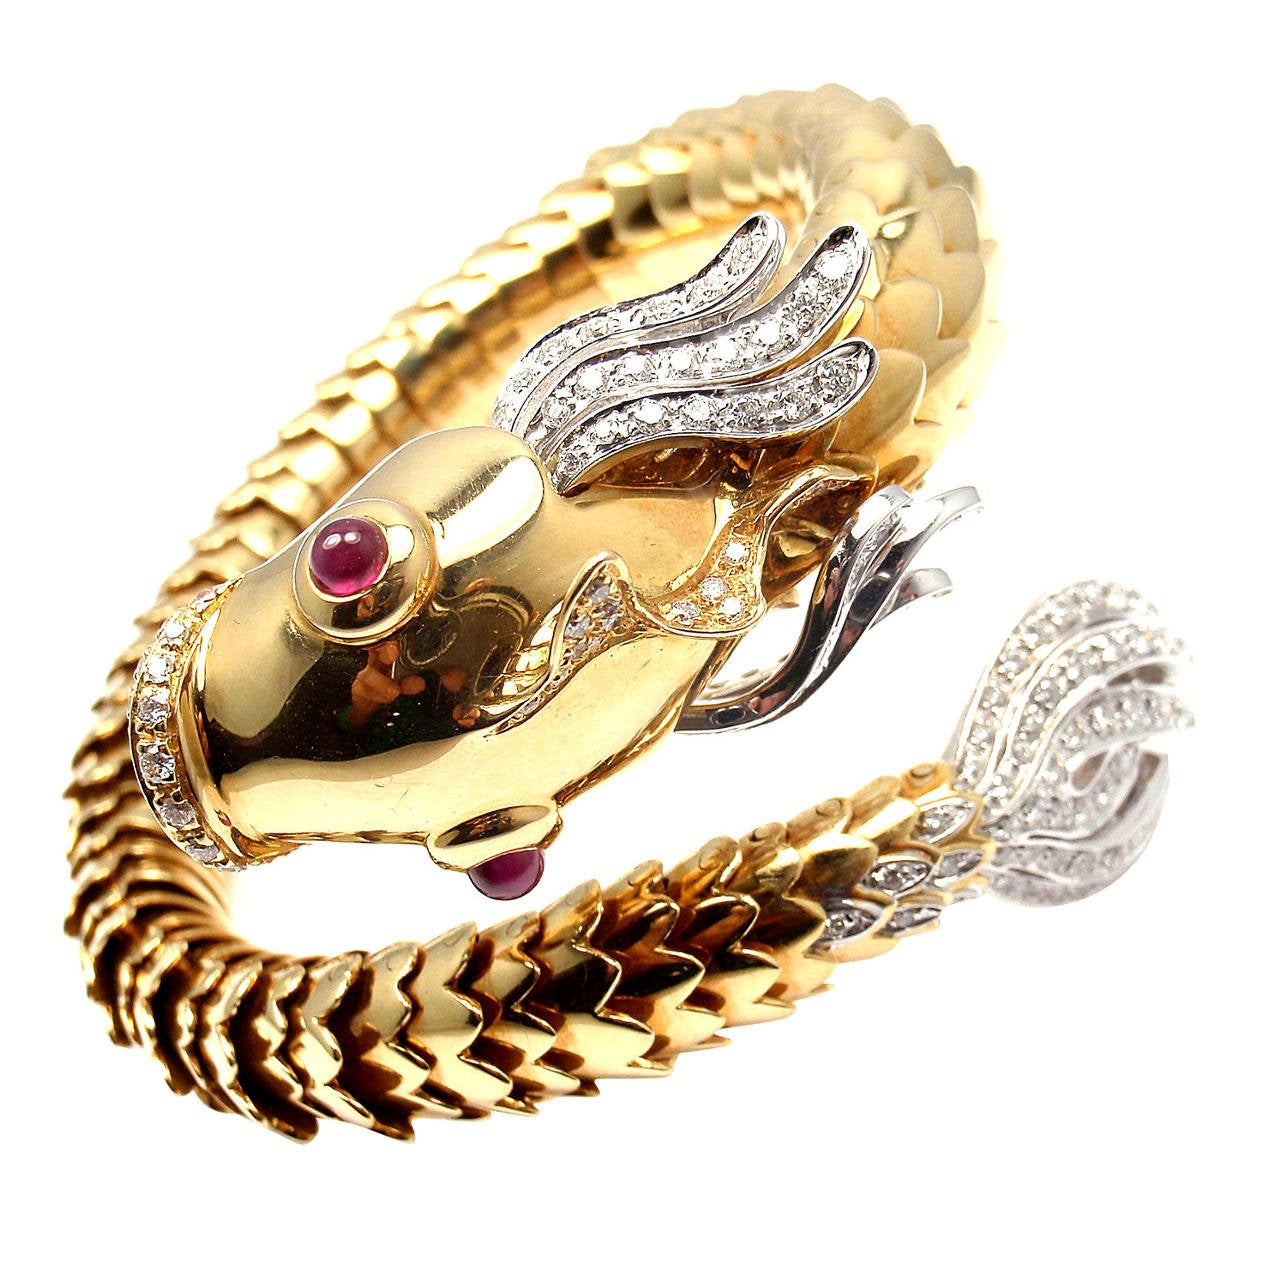 Roberto Coin 18k Gold Nemo Diamond & Ruby Bangle Bracelet ri5jL2